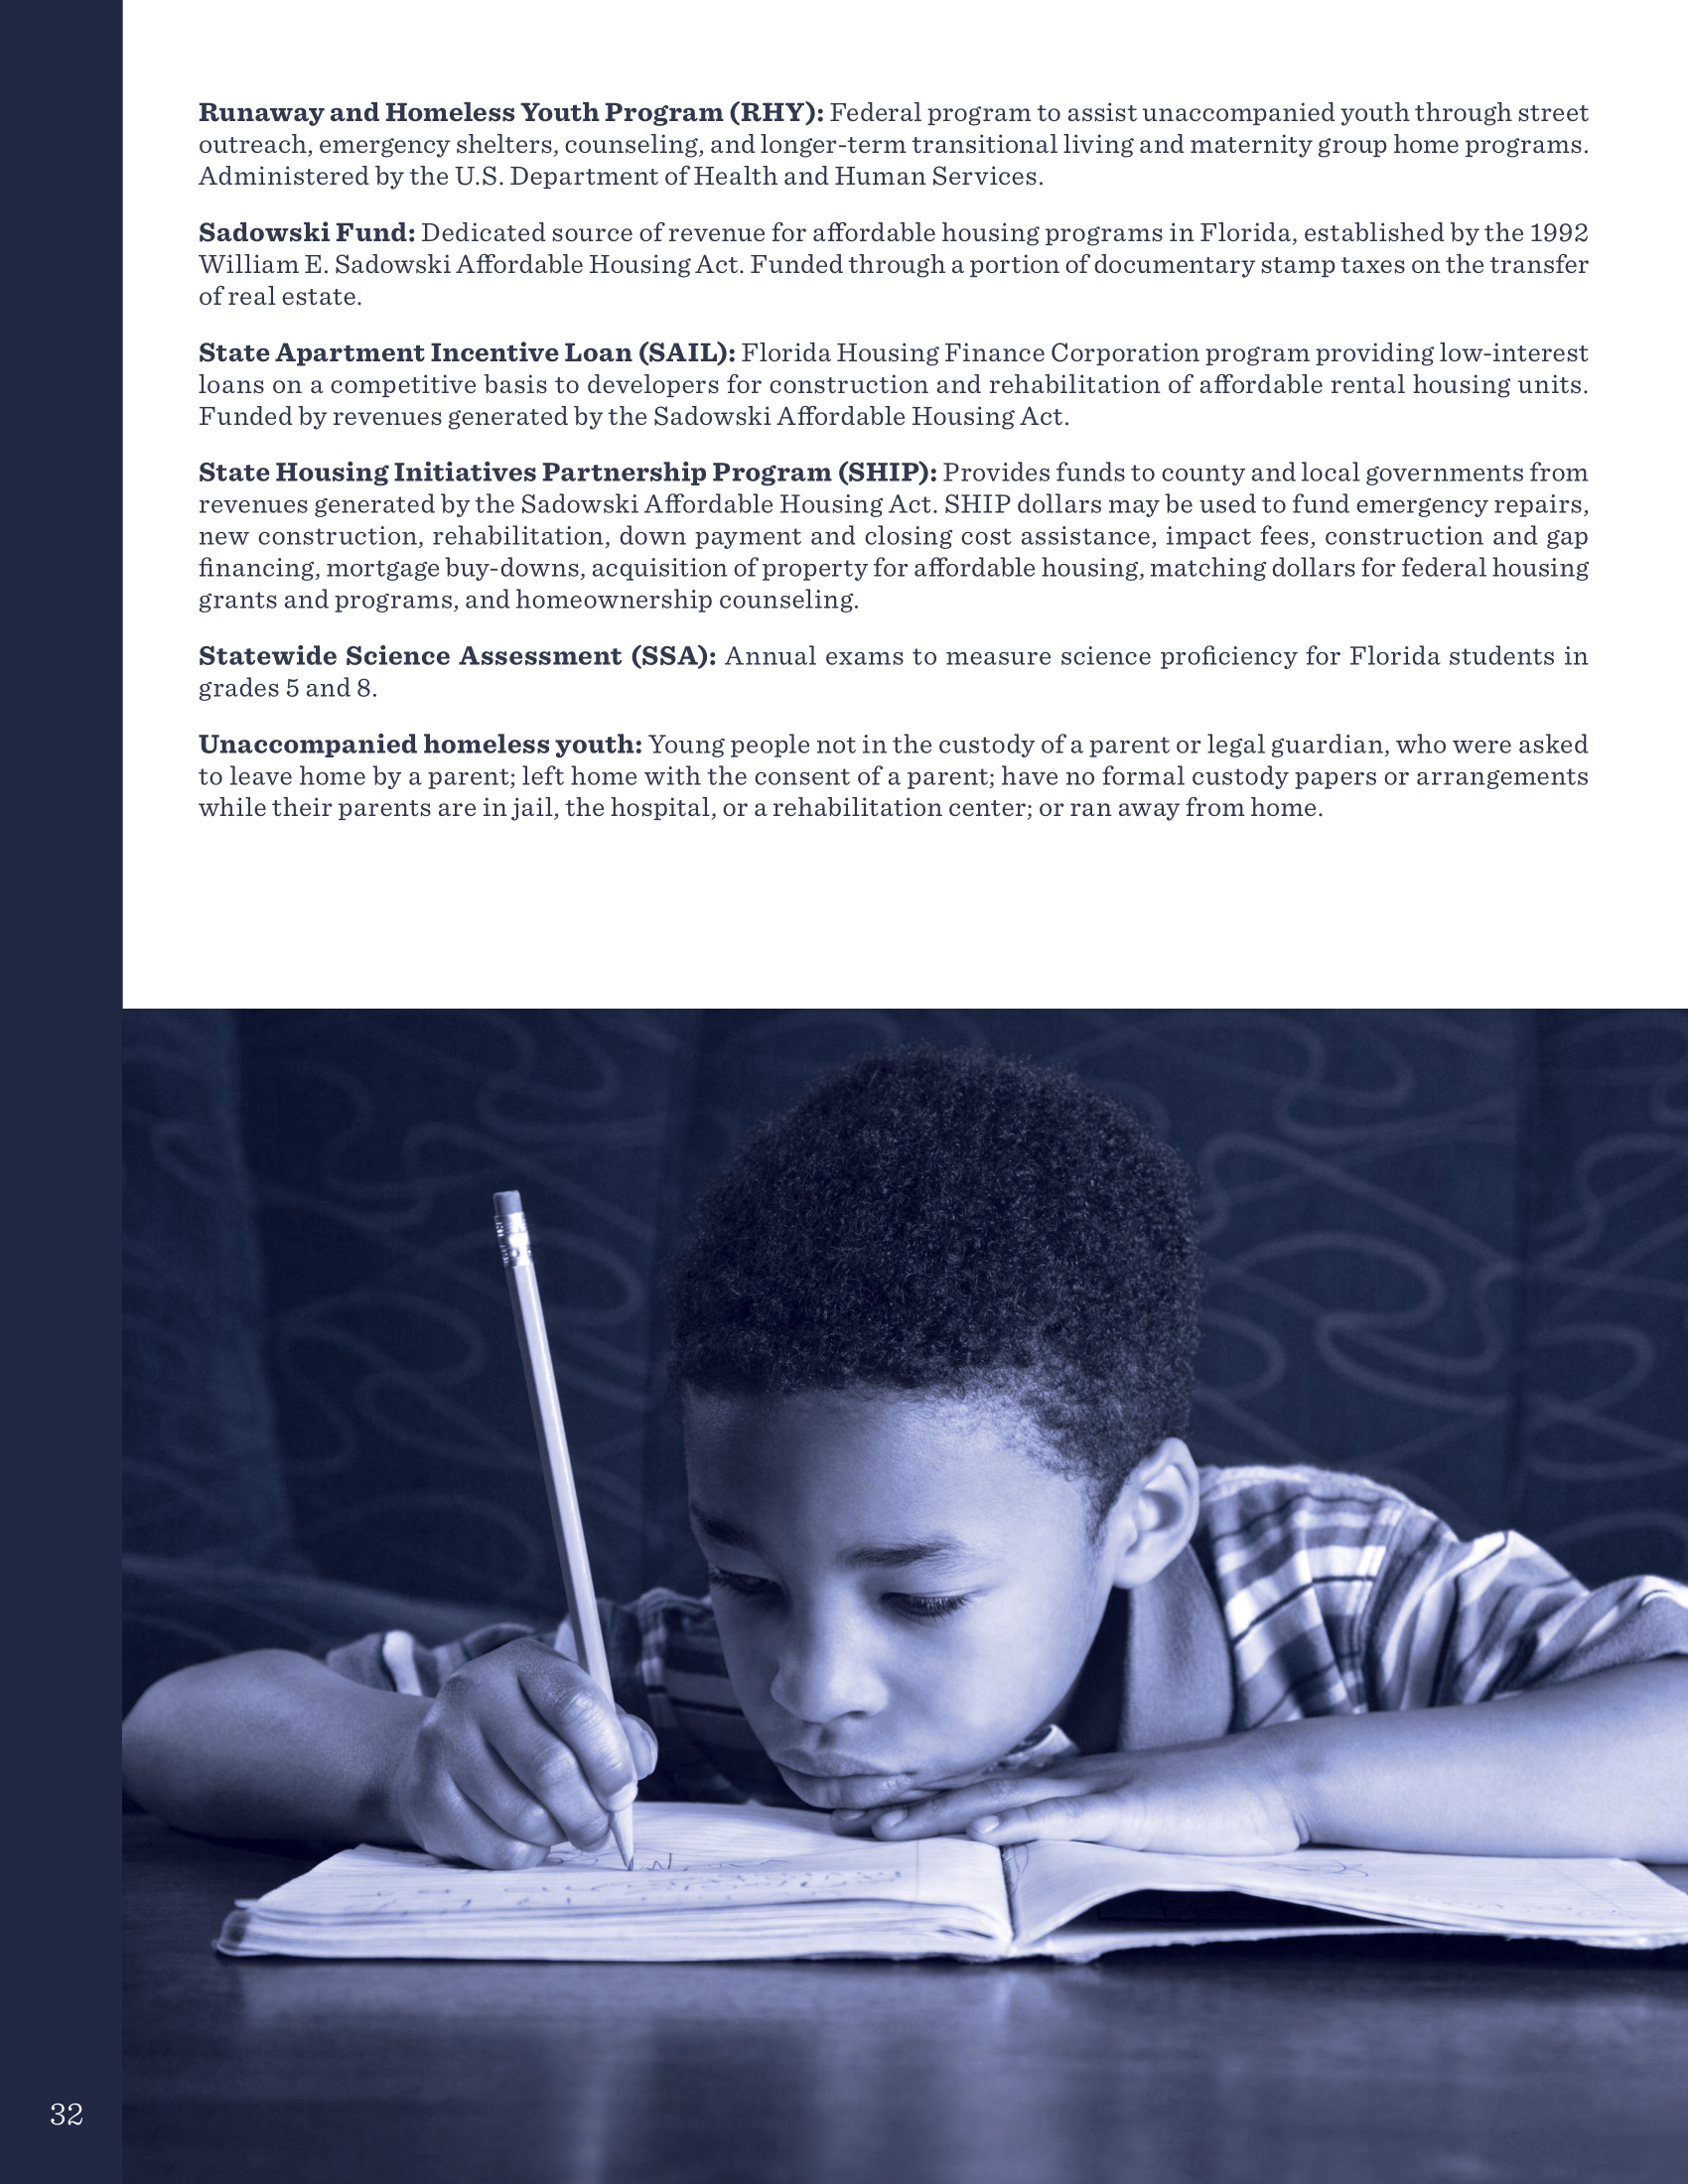 Homelessness and Education in Florida Impacts on Children and Youth - October 2017-32.png